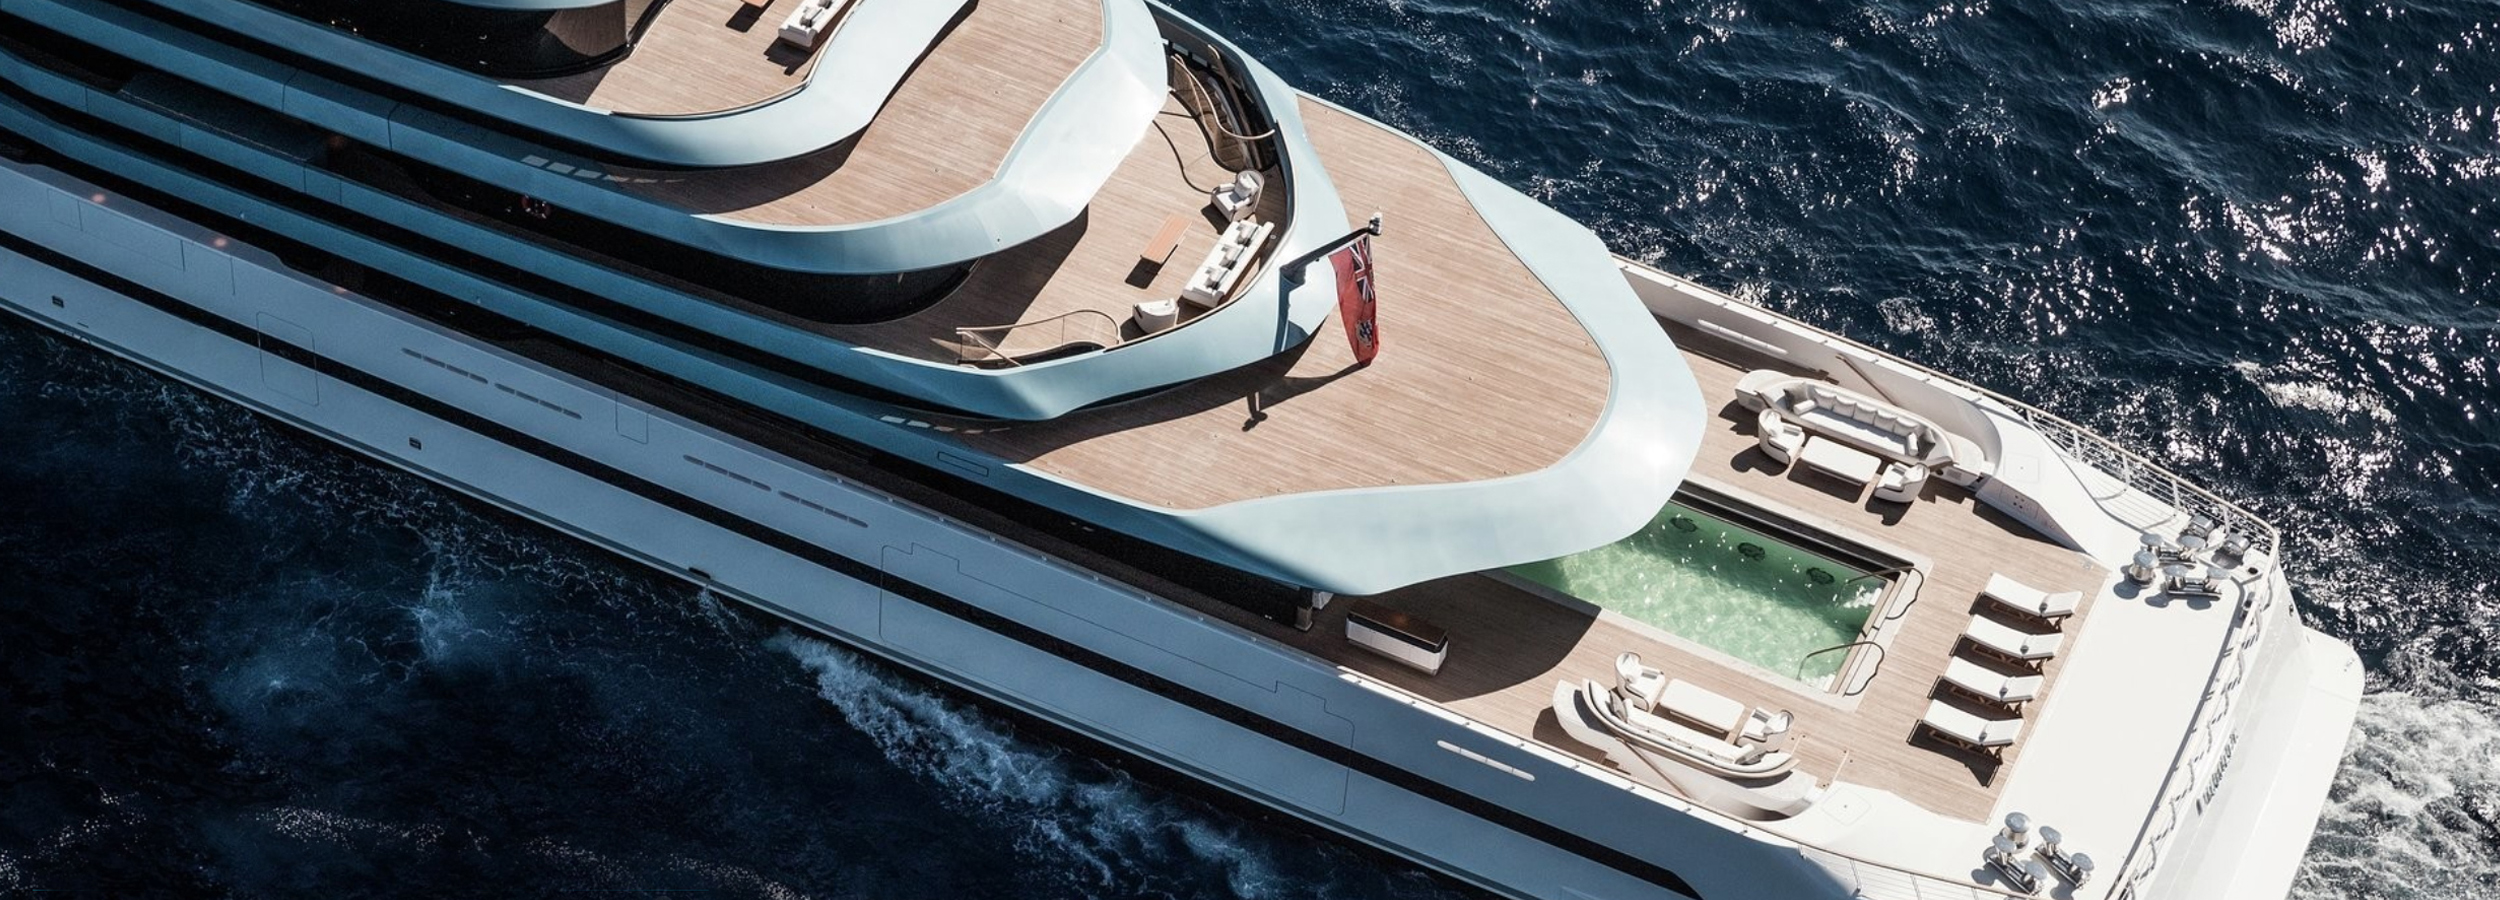 Yachtdesign Creative Wave